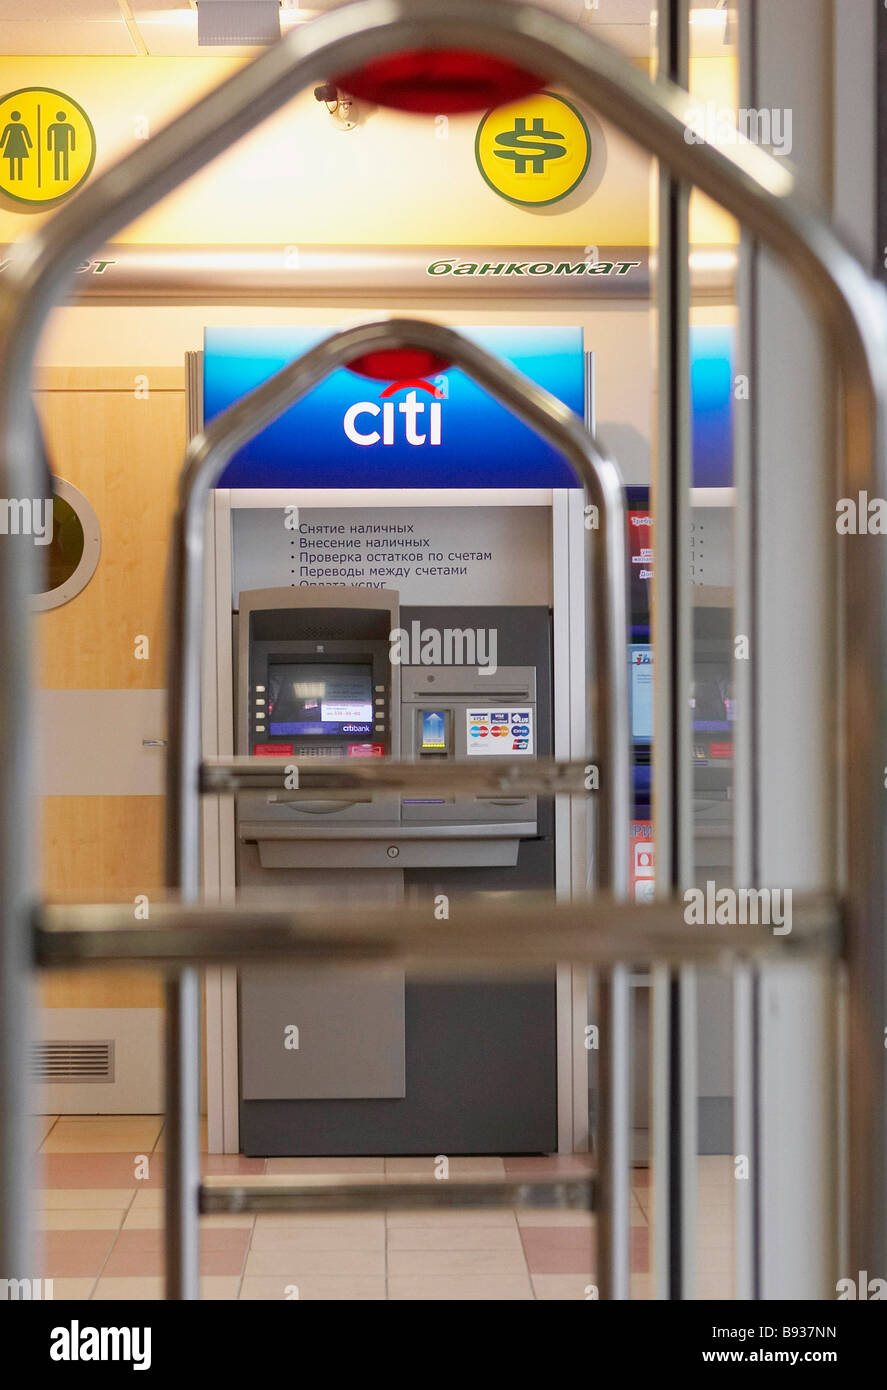 Citibank automatic teller machine - Stock Image